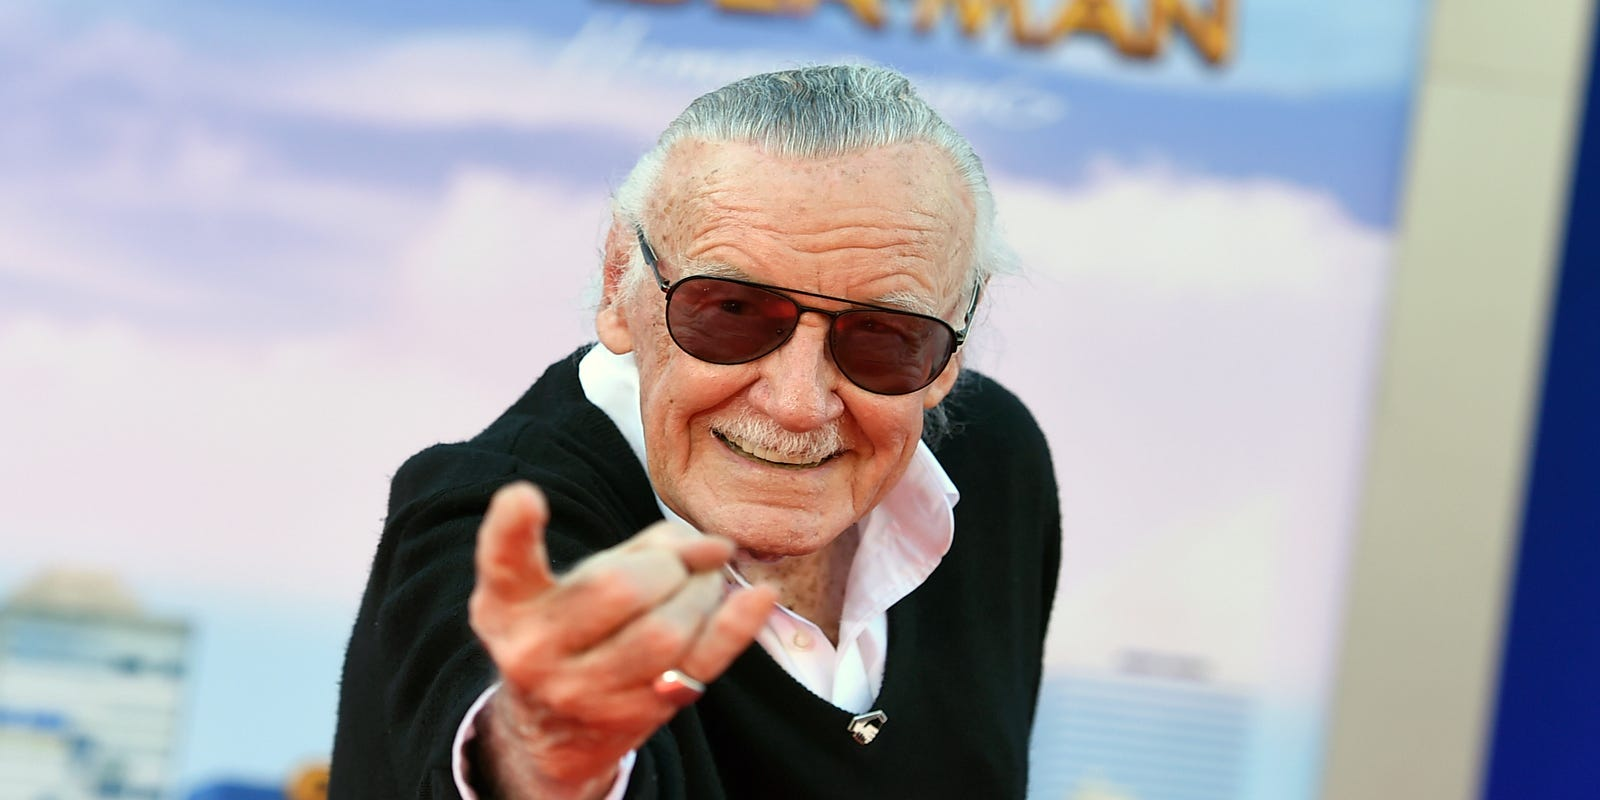 private-funeral-held-for-marvel-comics-mogul-stan-lee-but-more-memorial-plans-in-the-works